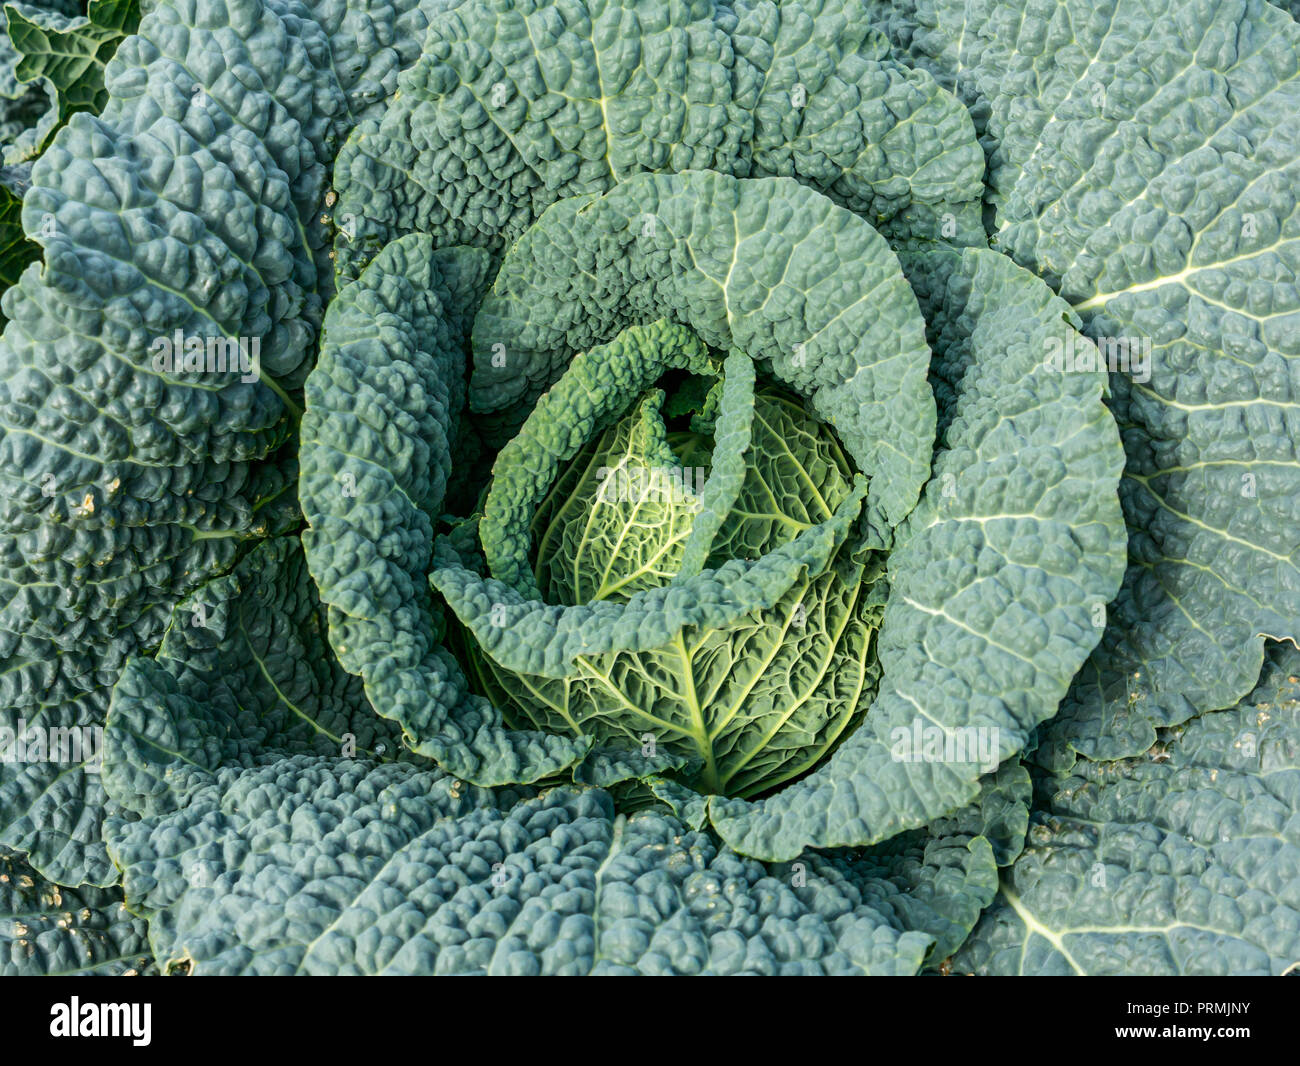 close-up-of-growing-green-cabbages-in-cr